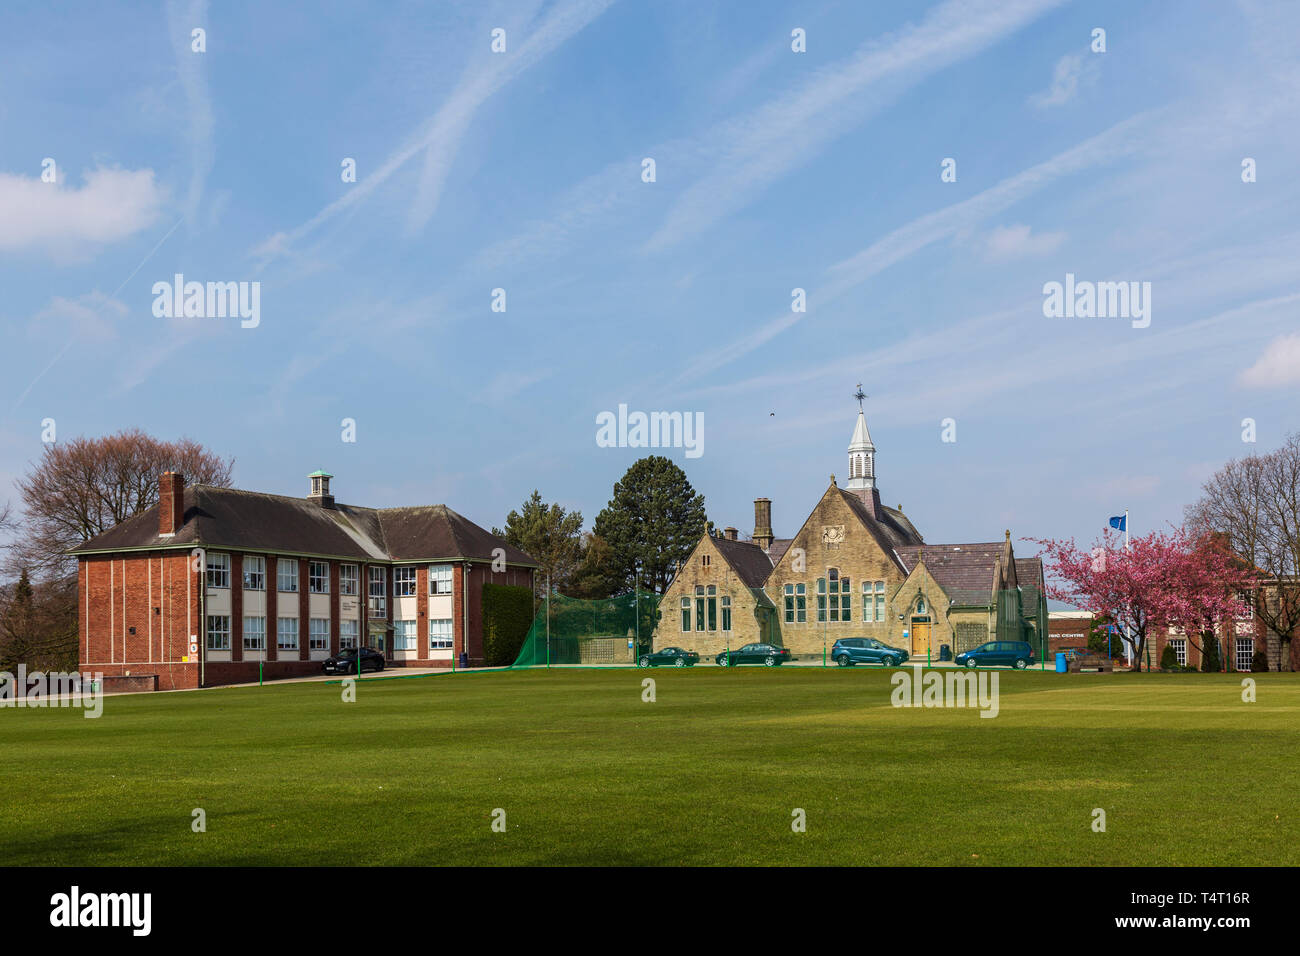 Kings School, Macclesfield on a Bright and Sunny April Morning - Stock Image